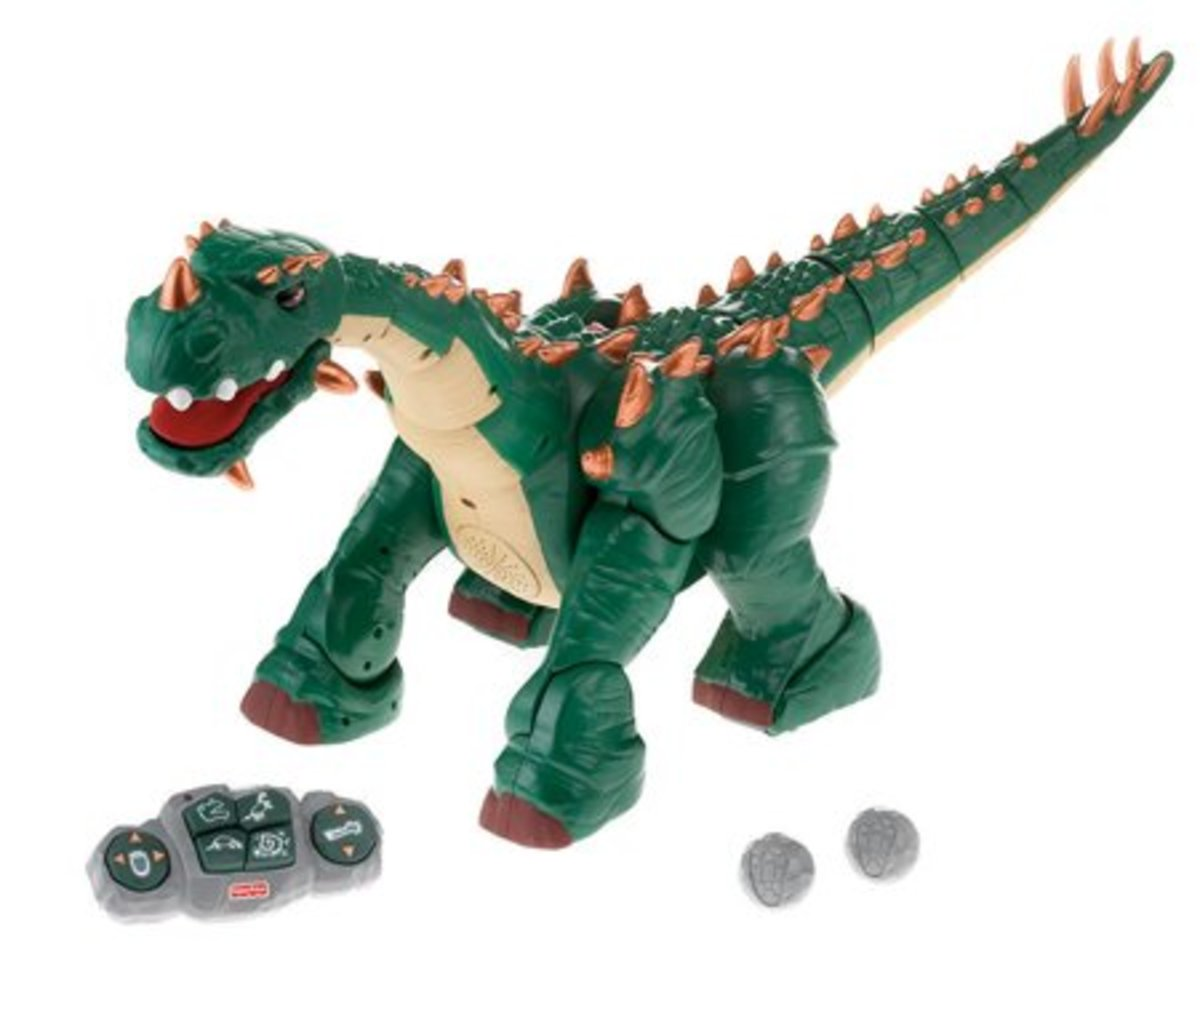 ImagiNext: Spike the Ultra Dinosaur by Fisher Price was new in June 2008, and is now appearing in stores and online.